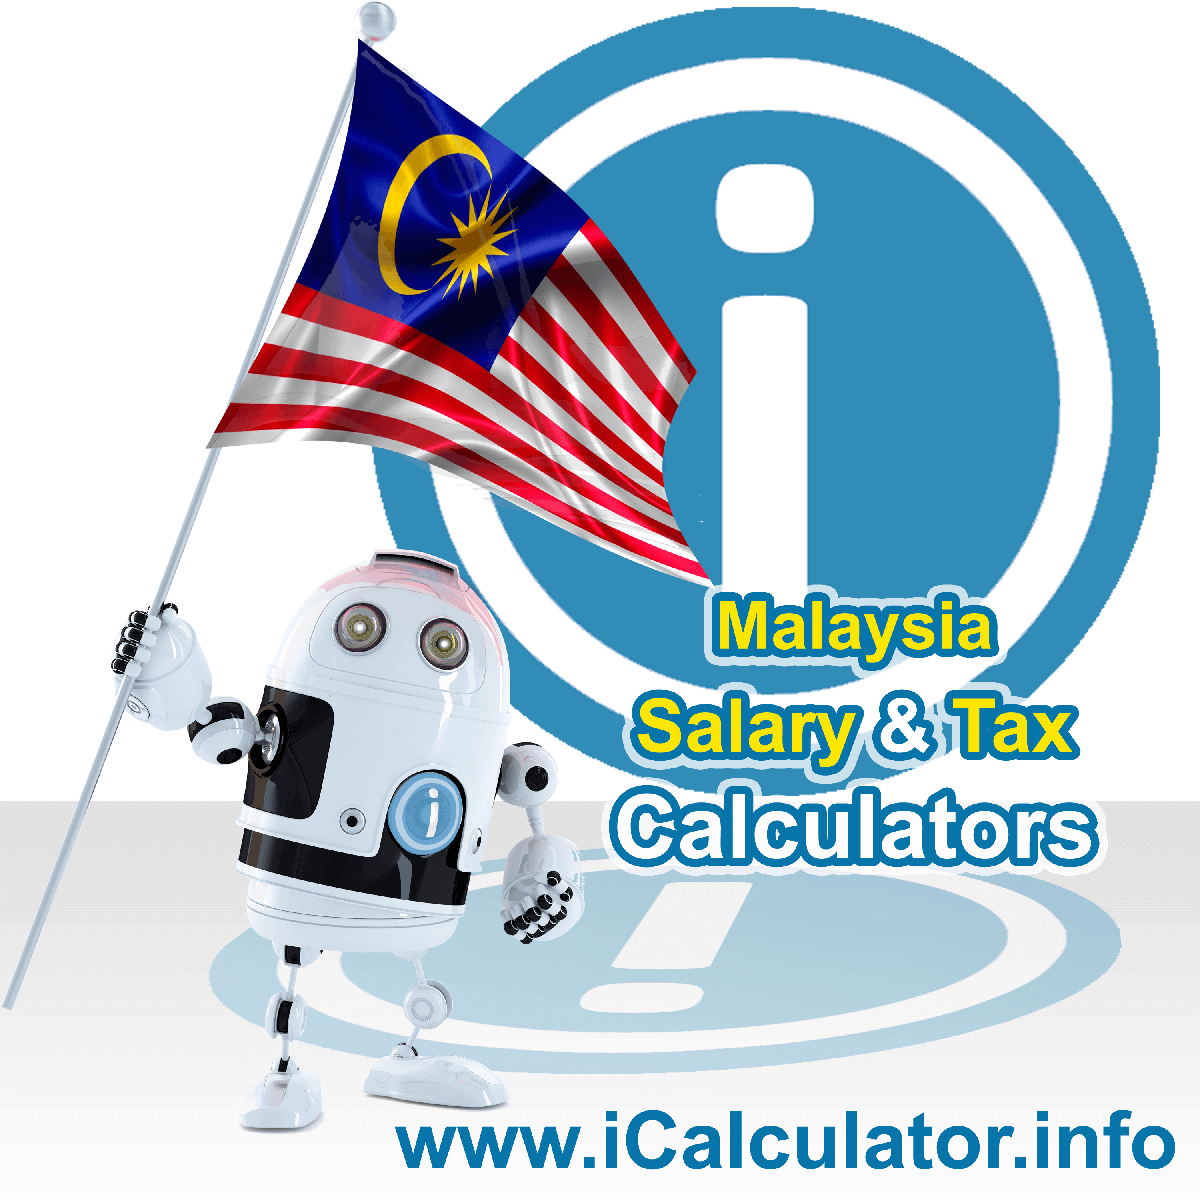 Malaysia Wage Calculator. This image shows the Malaysia flag and information relating to the tax formula for the Malaysia Tax Calculator